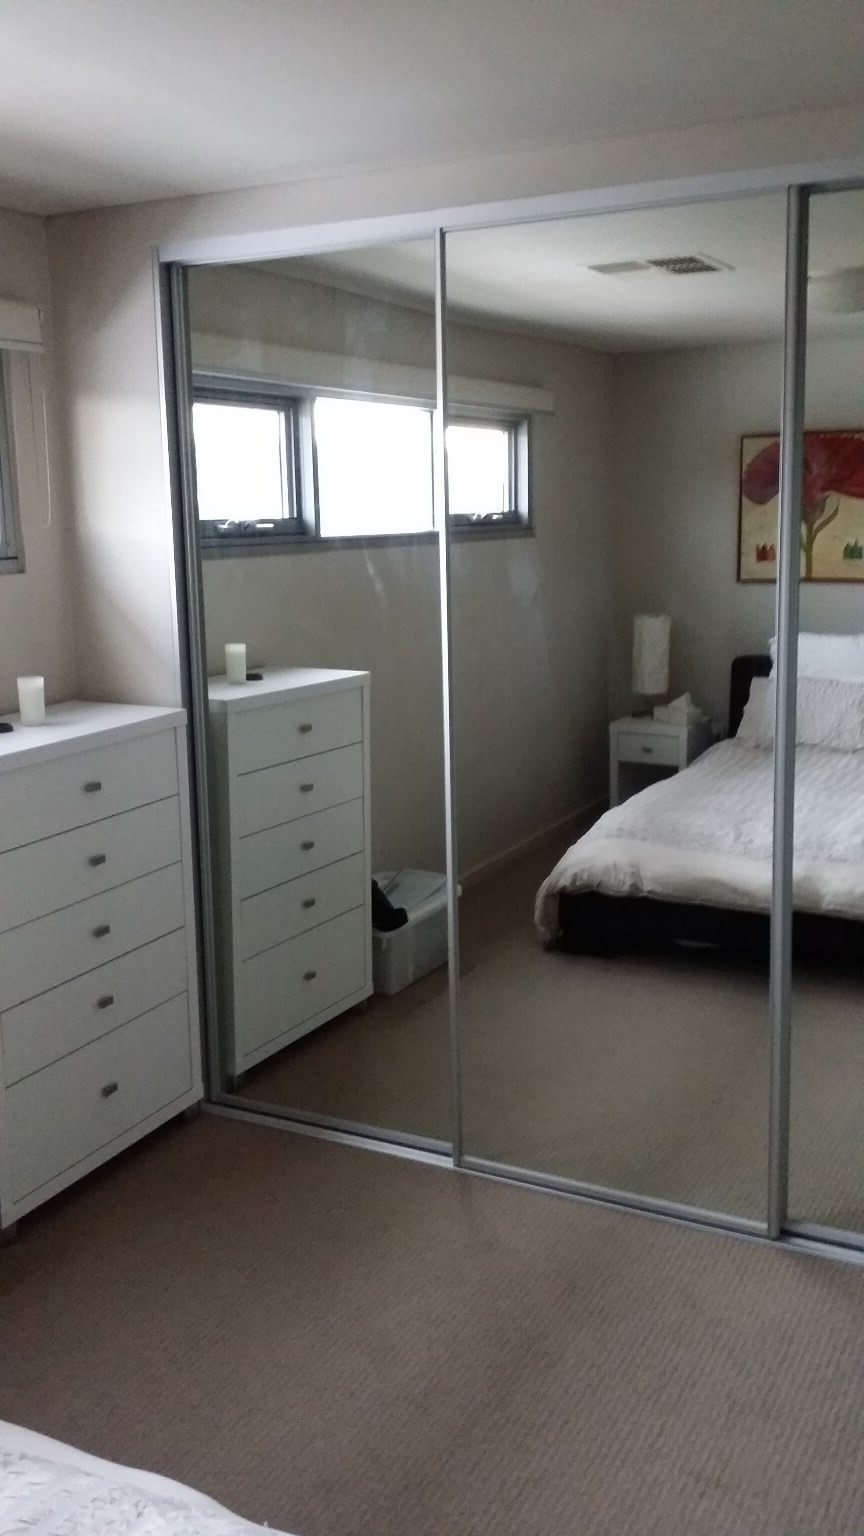 1 Door Mirrored Wardrobes Within Well Known Ikea Wardrobes Sliding Mirror Doors 1 Door Mirrored Wardrobe B & Q (Gallery 14 of 15)